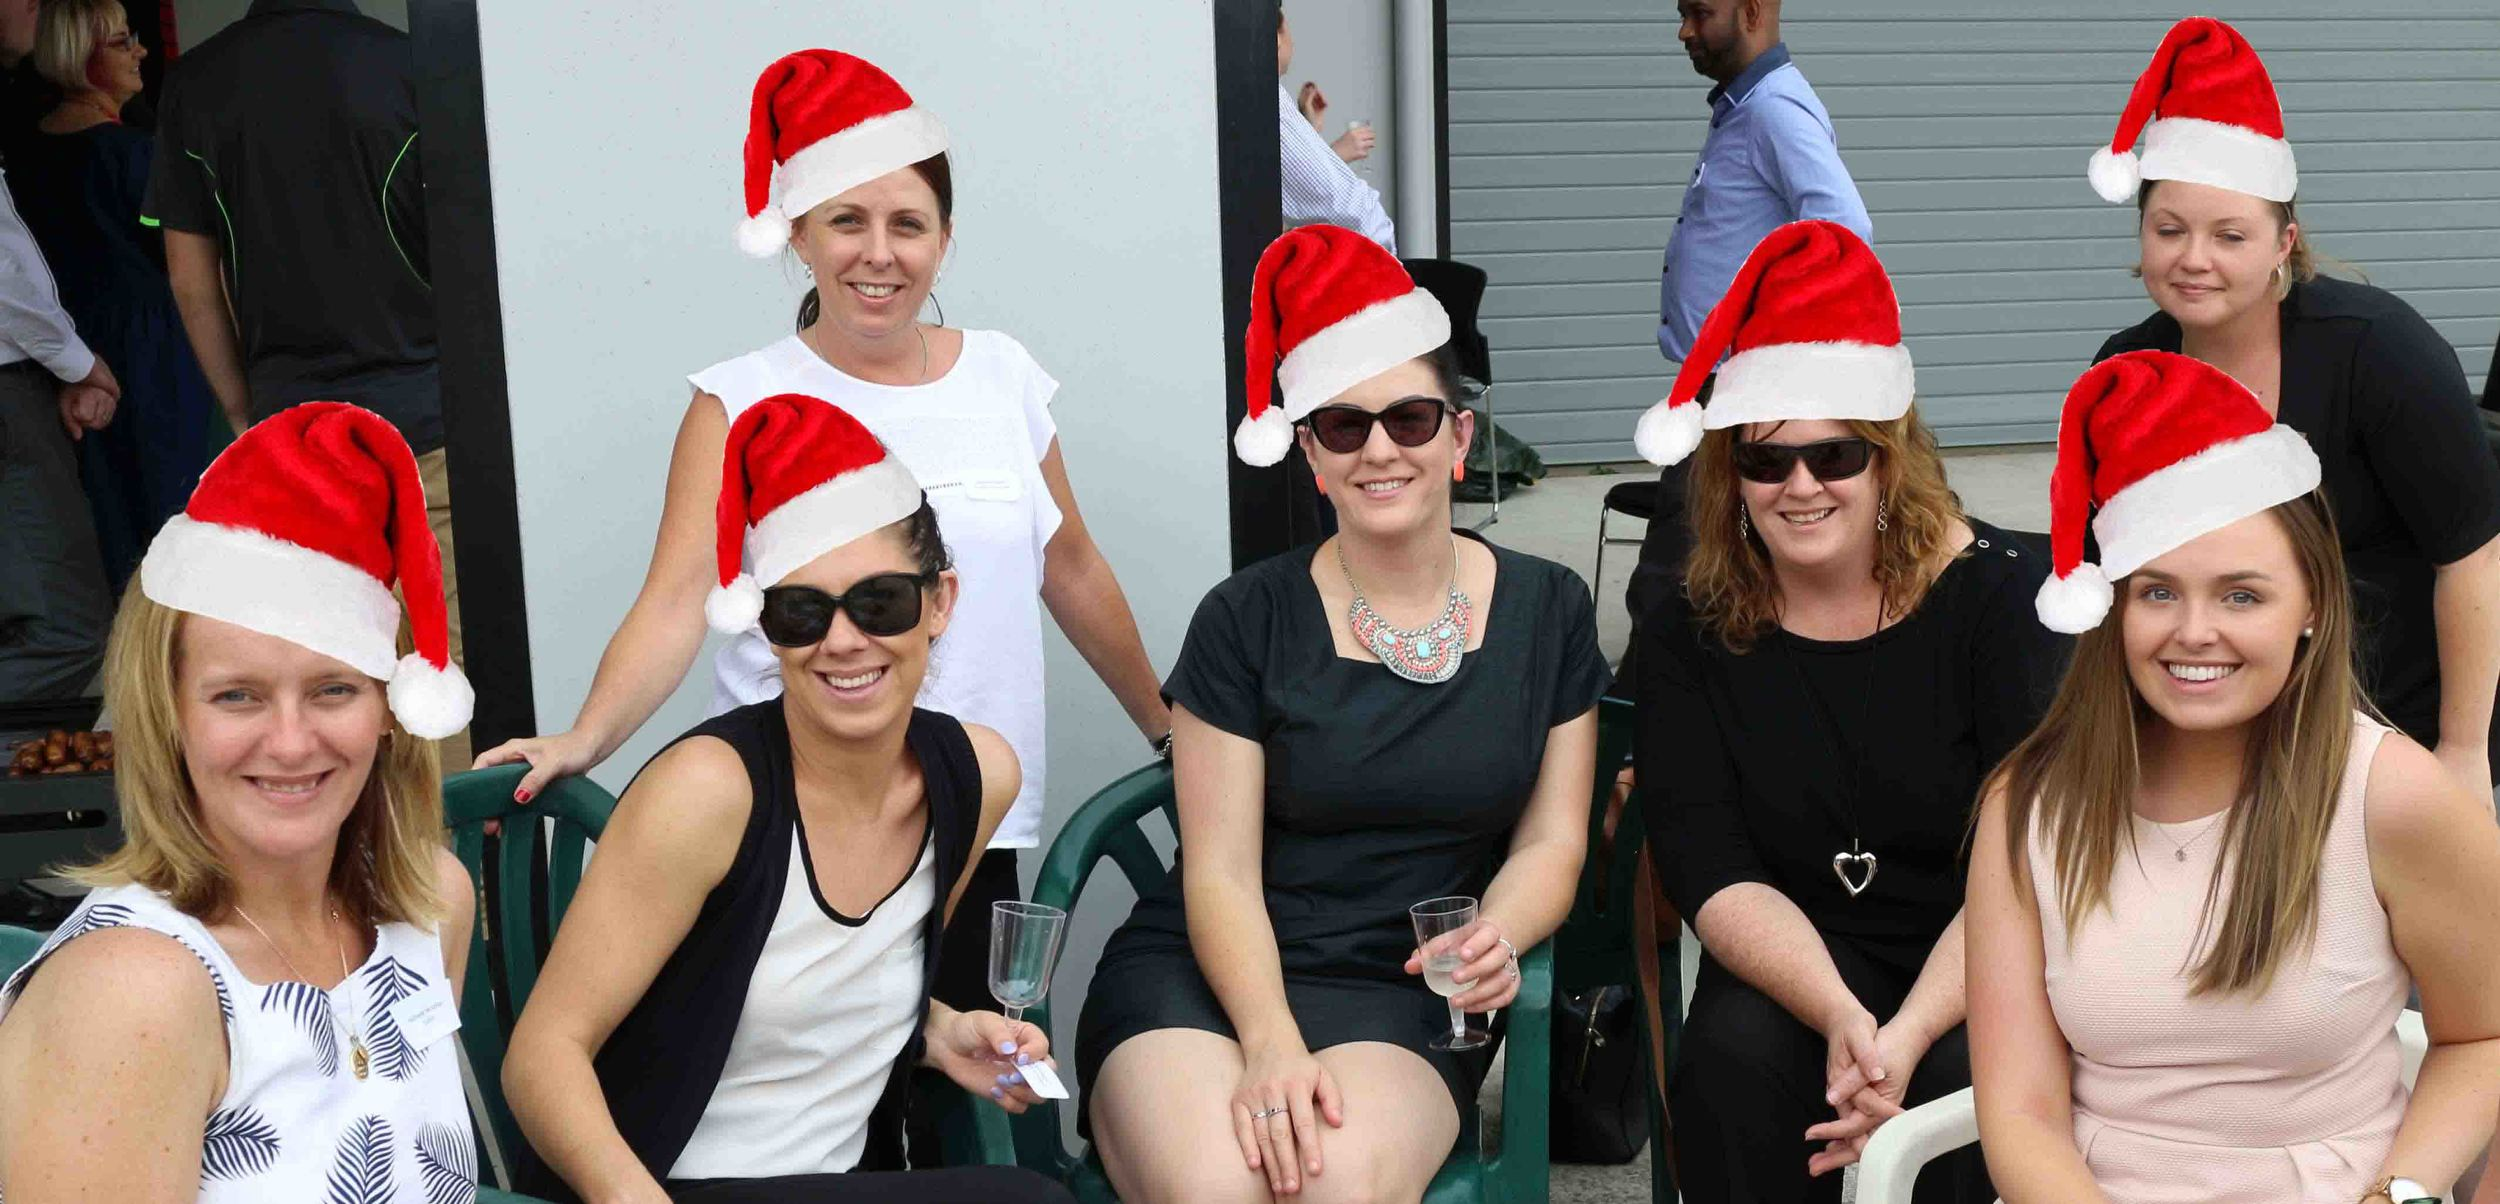 h2-insurance-solutions-2015-Christmas-party10.JPG